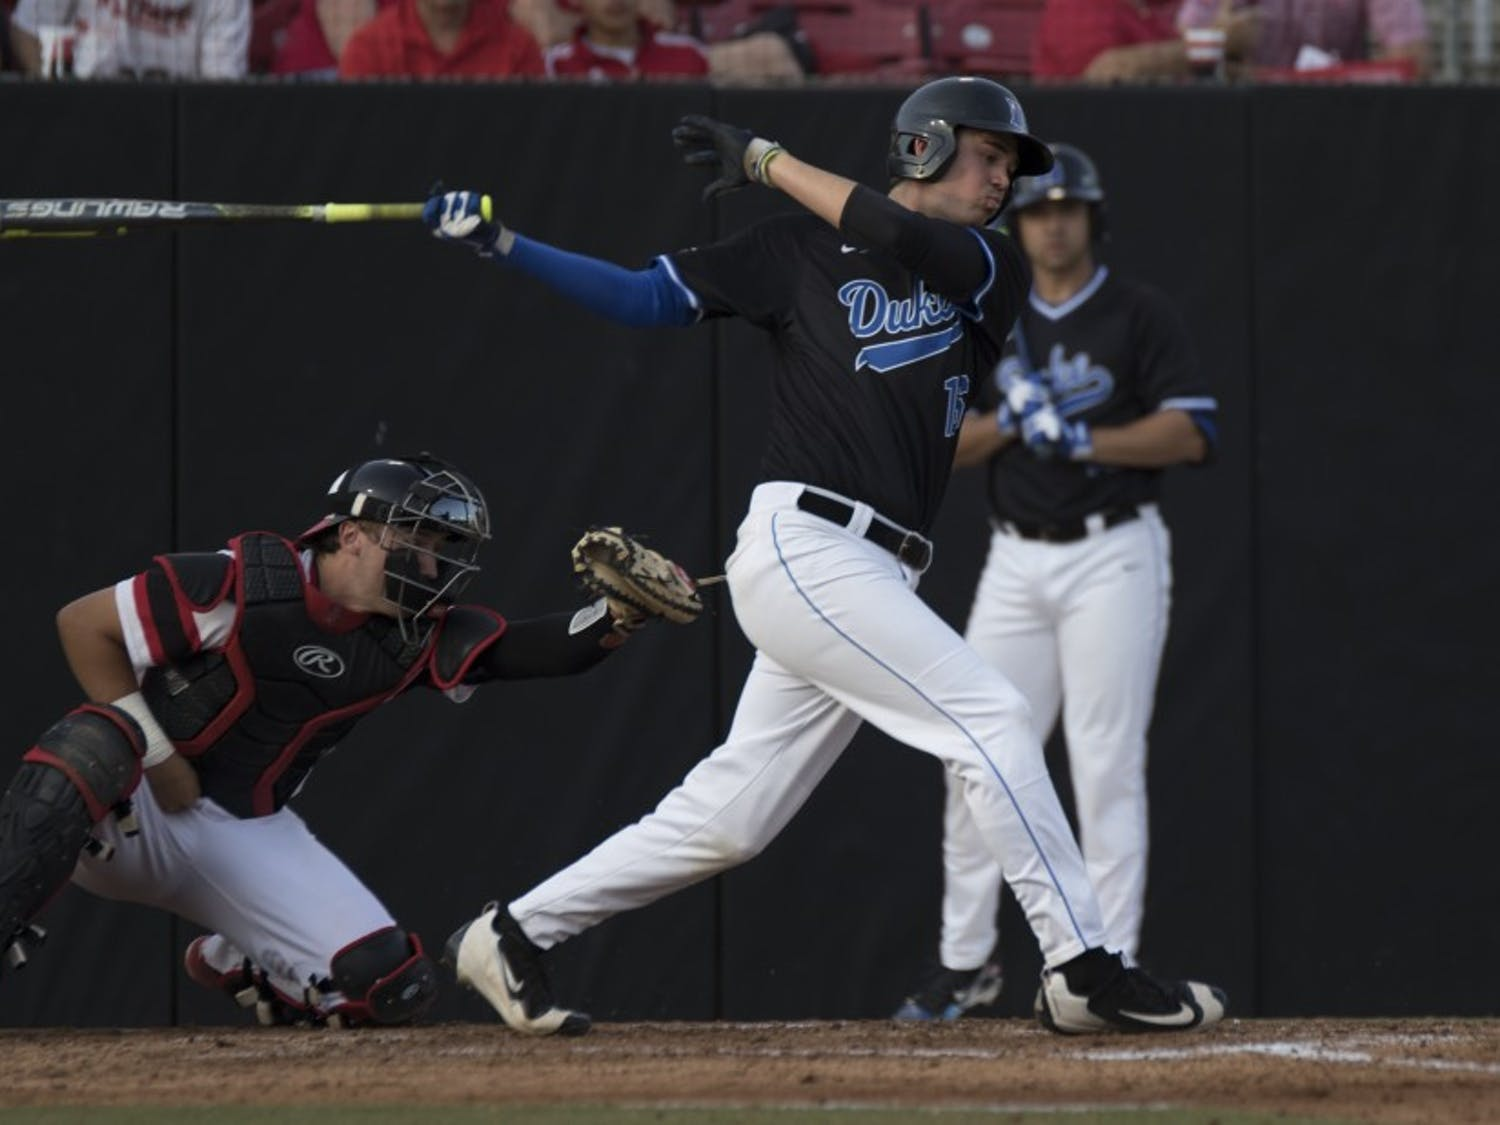 Sophomore Michael Smiciklas drove in the go-ahead run in the top of the ninth inning Sunday afternoon to help Duke salvage the final game of a three-game series.